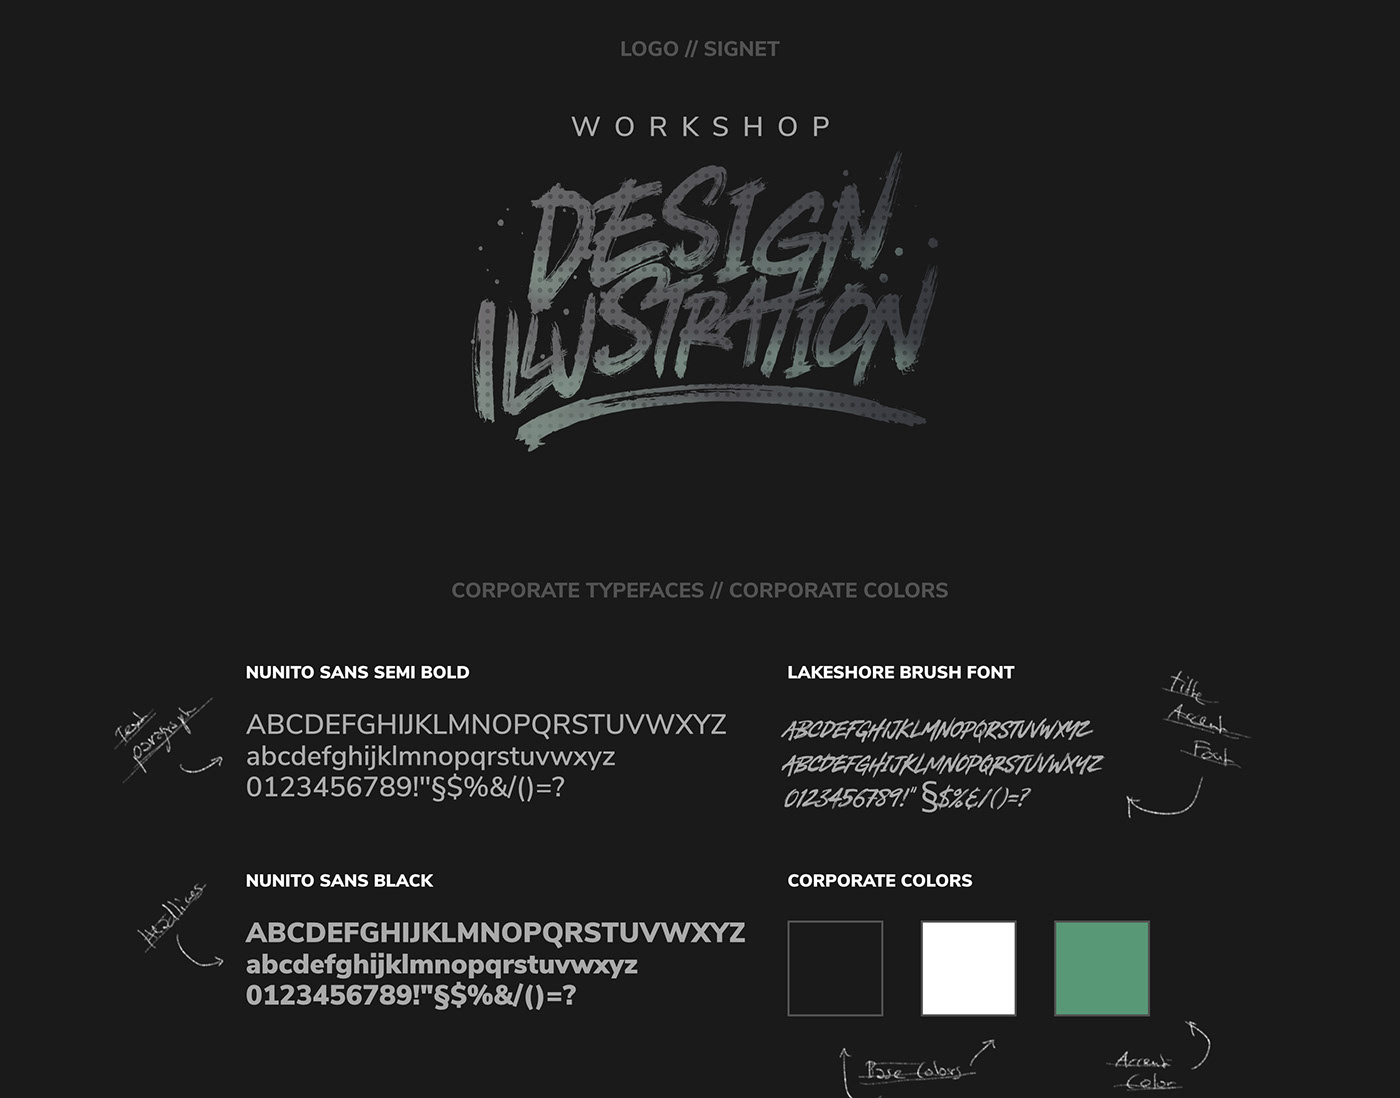 WORKSHOP DESIGN + ILLUSTRATION // Logo